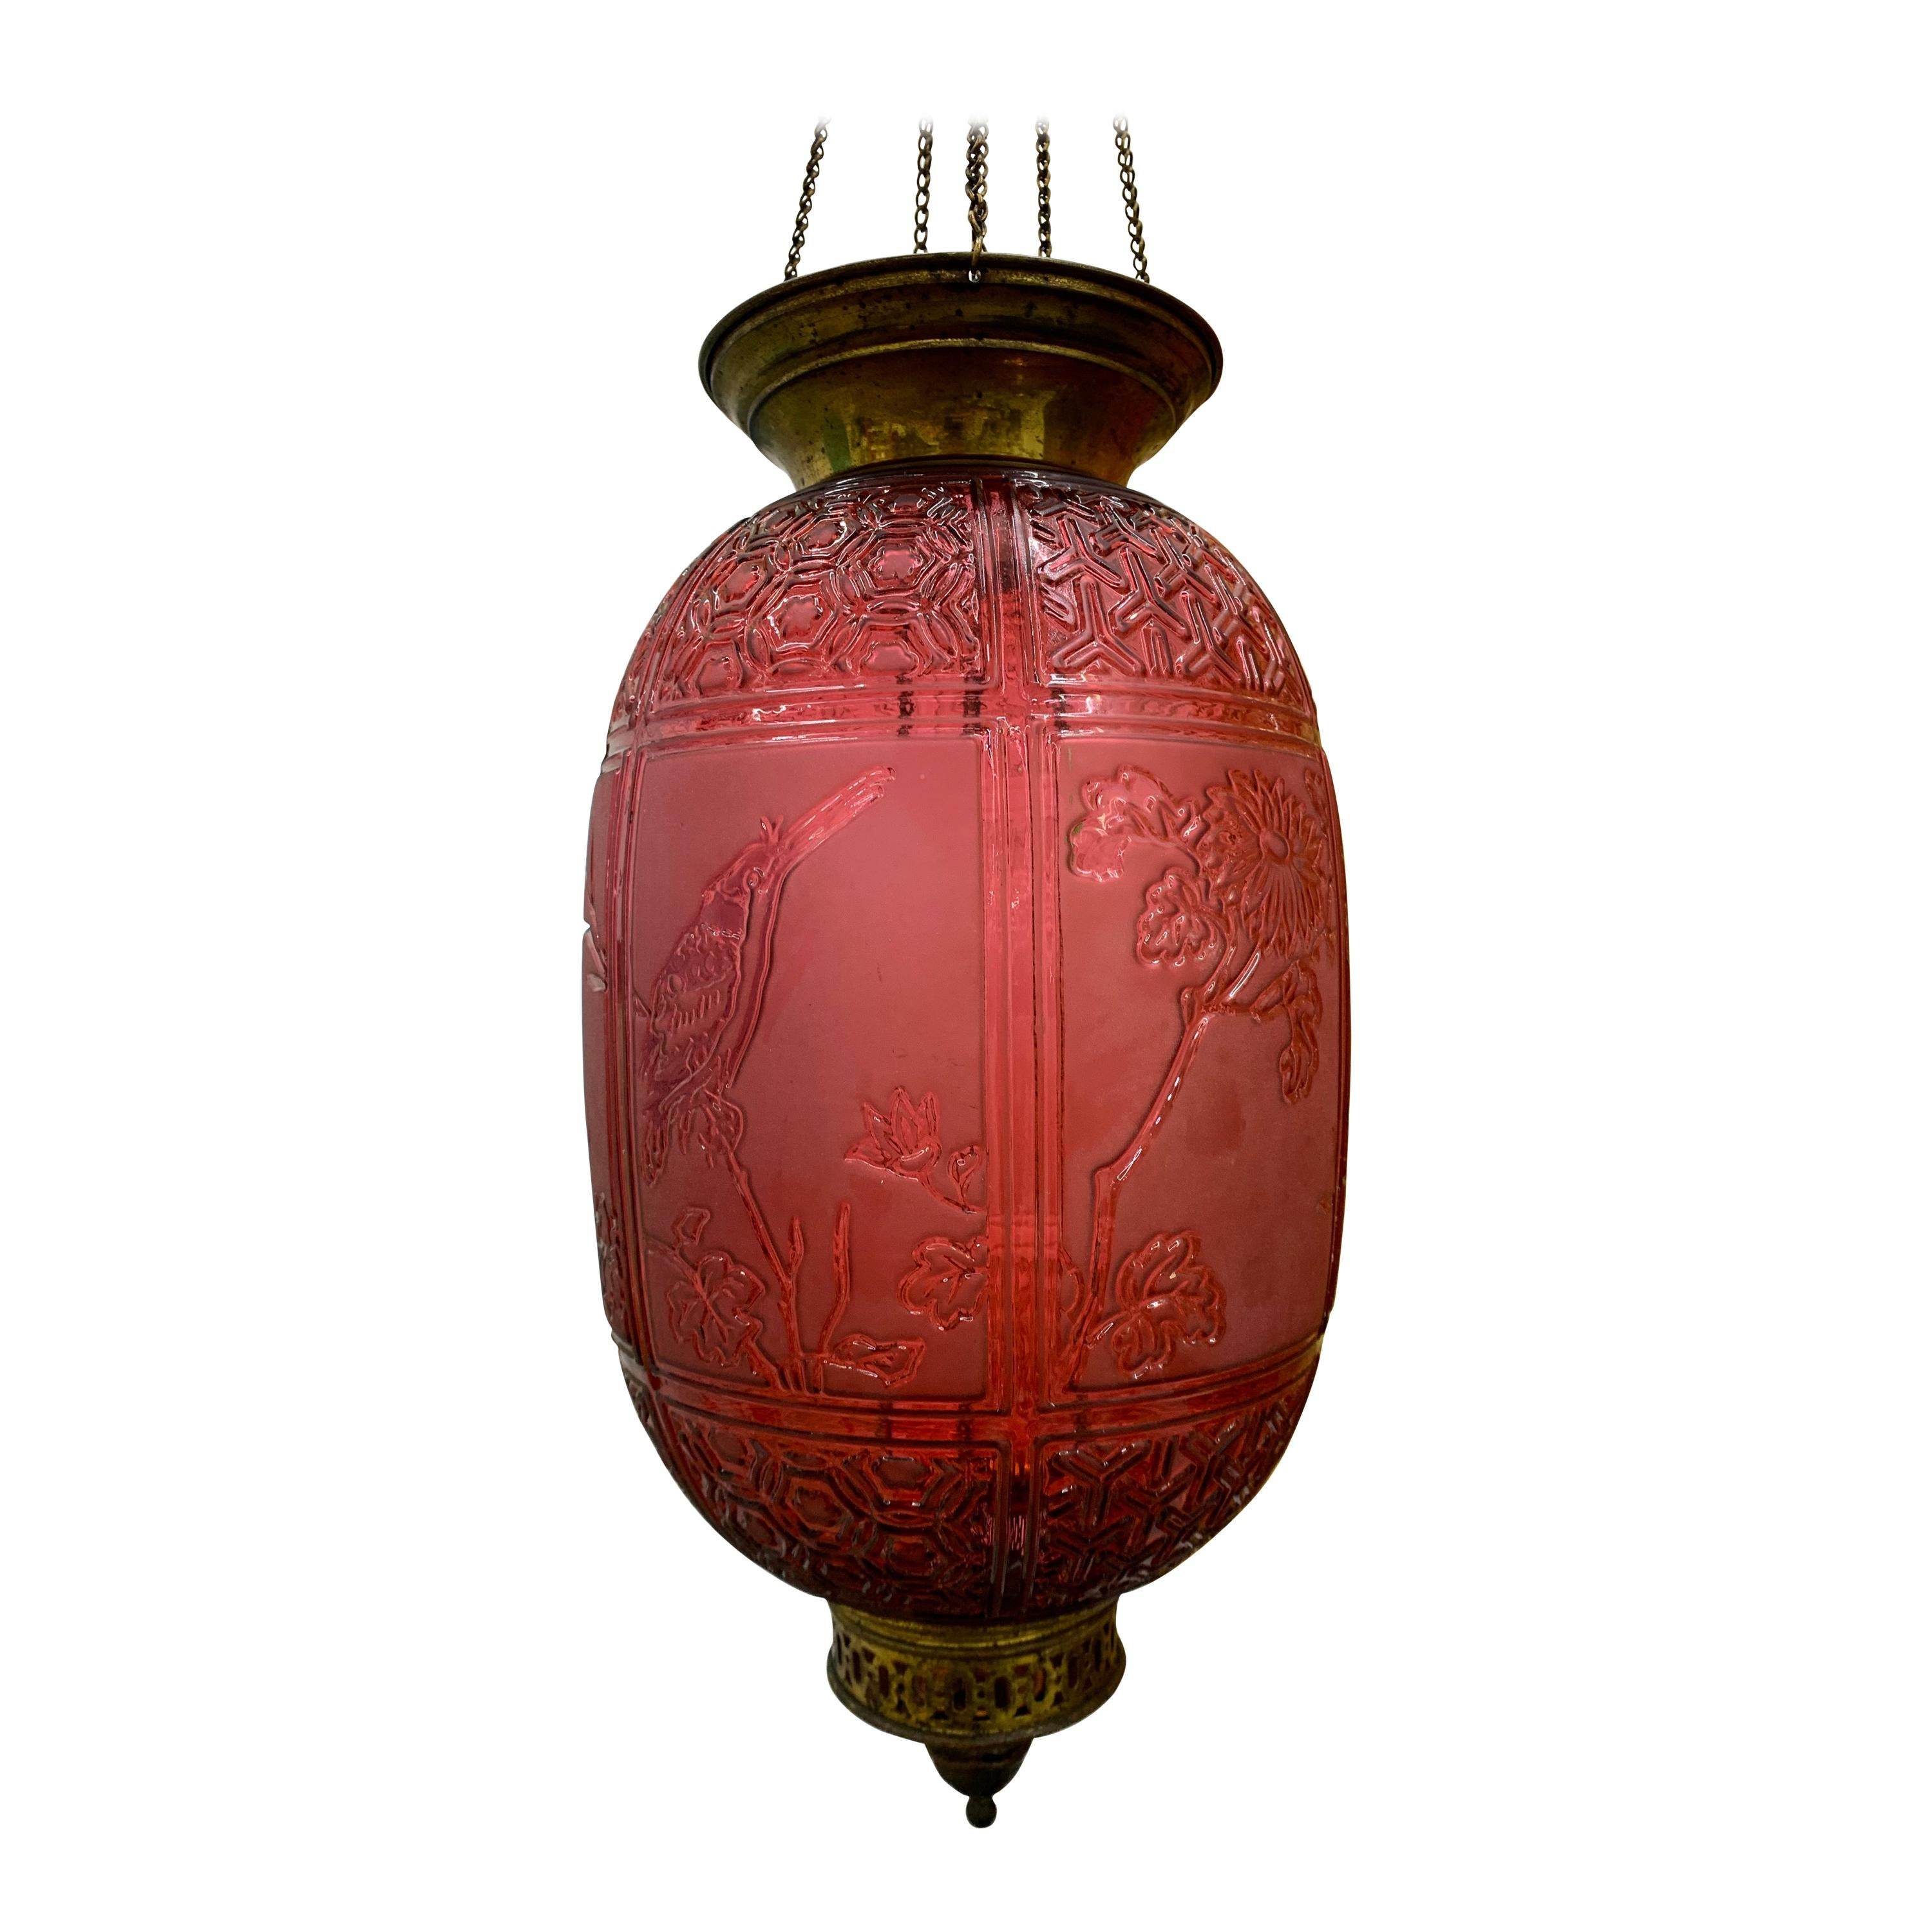 Red Art Nouveau Candle Lantern by Baccarat France, Depicting Birds, circa 1890